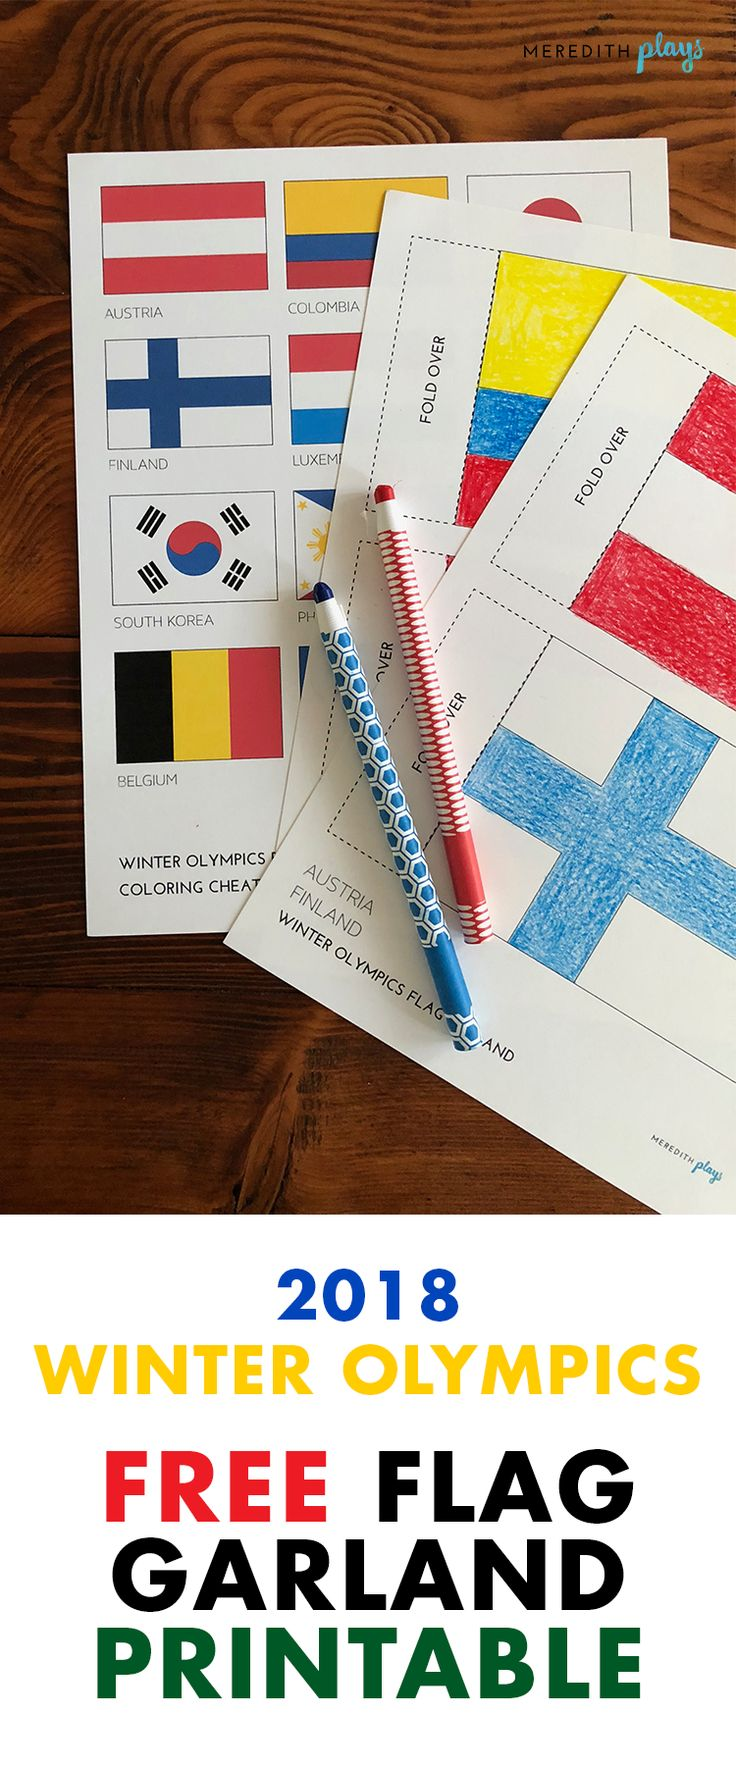 PyeongChang 2018 Winter Olympics Flag Garland Printable | Free Winter Olympics Activities for Kids | Winter Olympics Coloring Pages